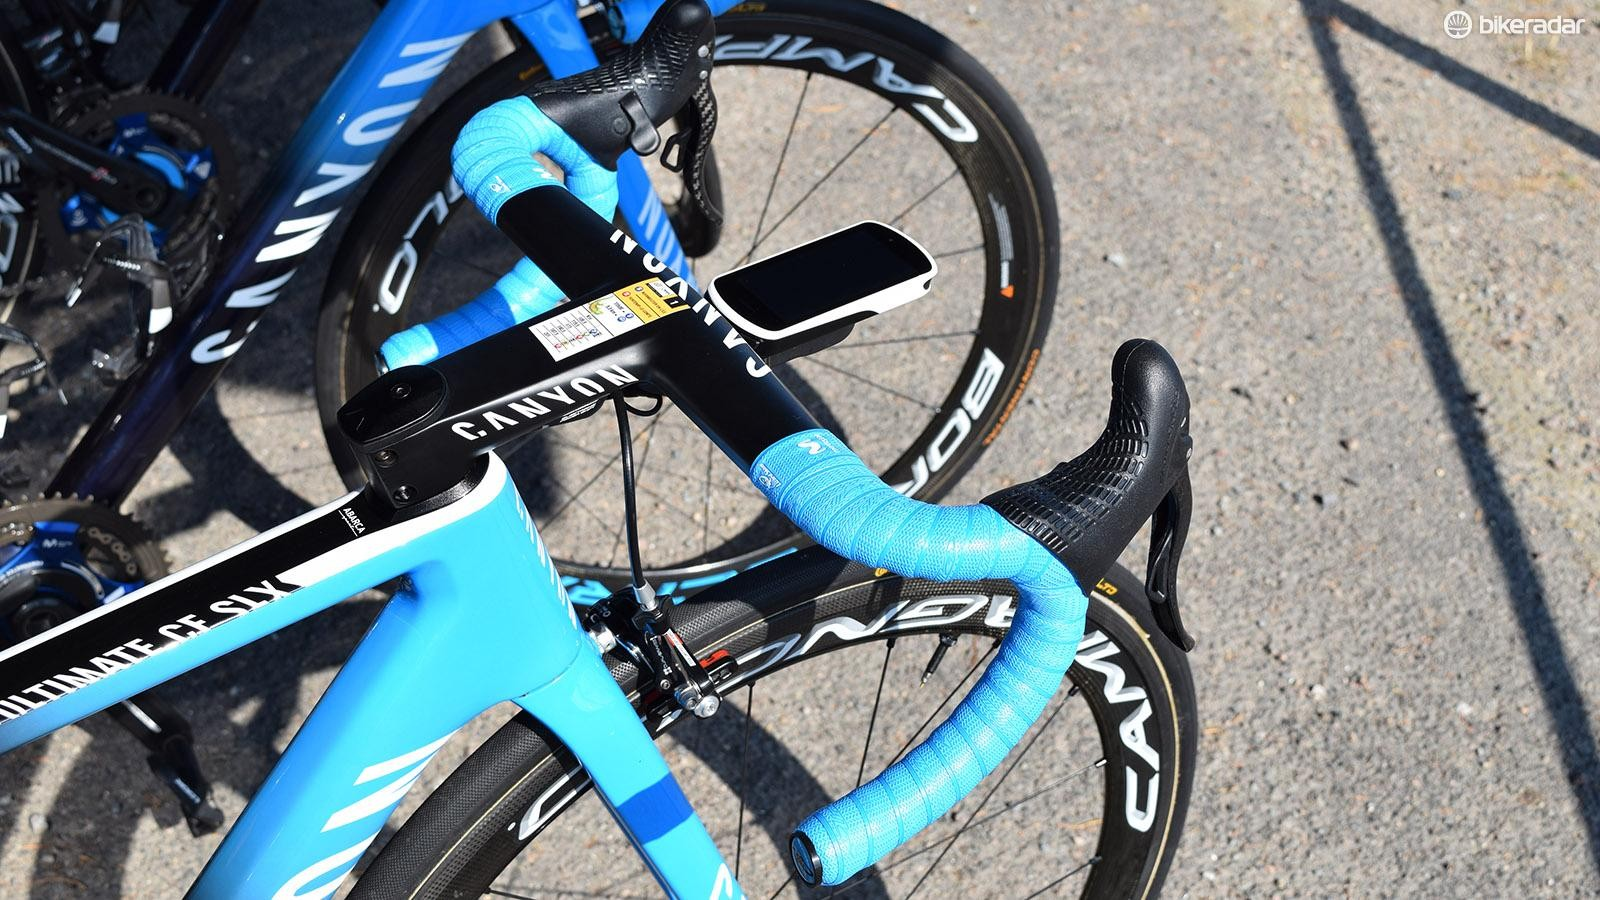 Colour-coordinated handlebar tape from LizardSkins complemented the frameset colour design